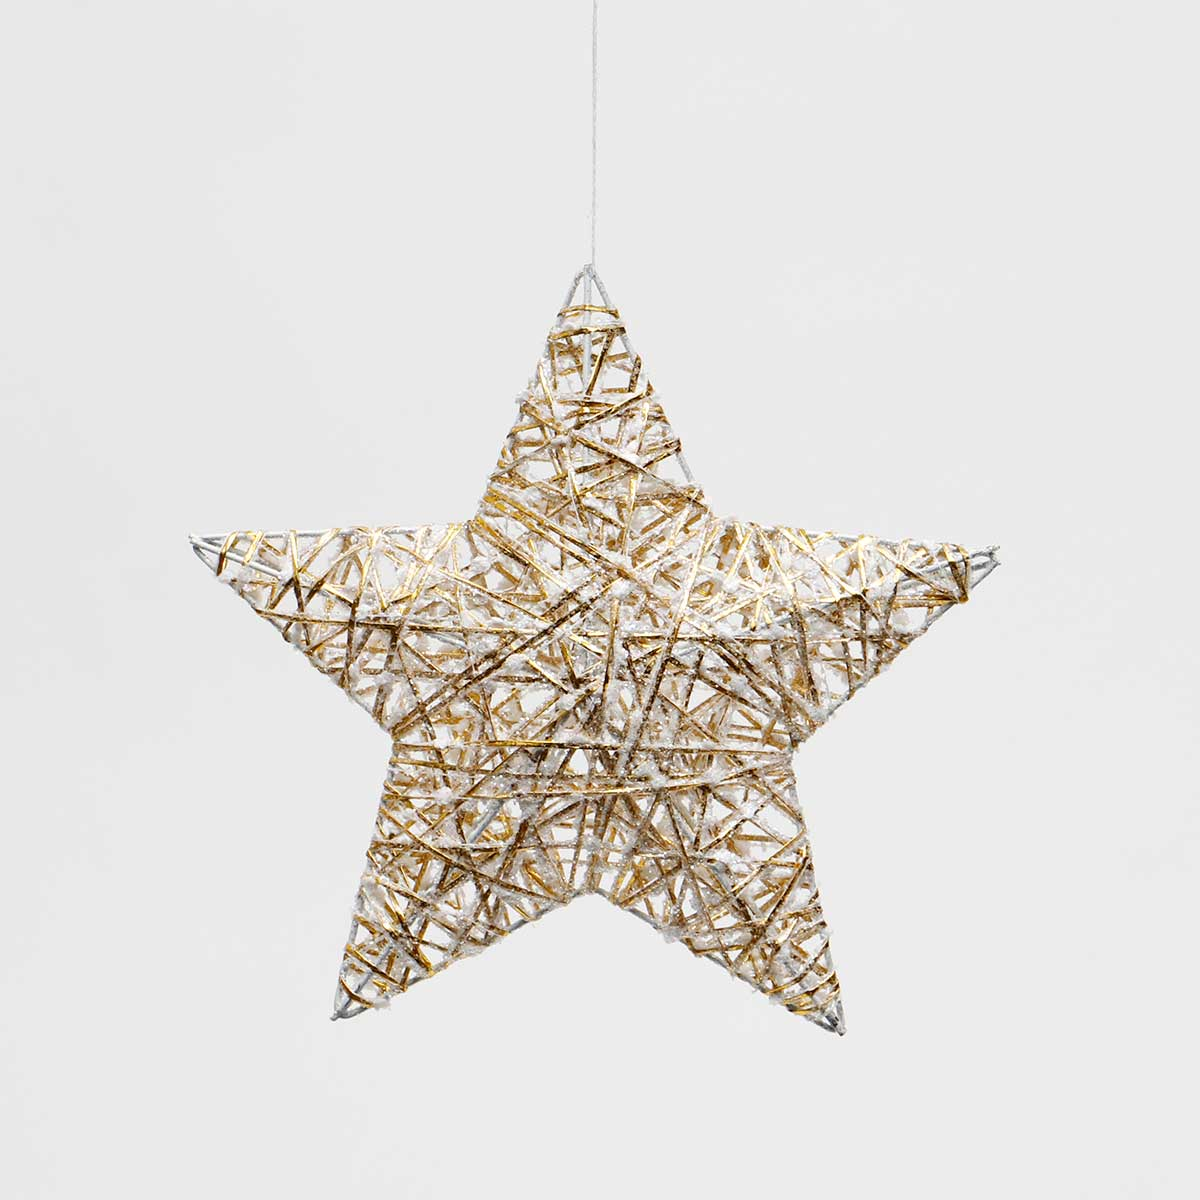 GALA WHITE/GOLD 3-D STAR ORNAMENT AMENT